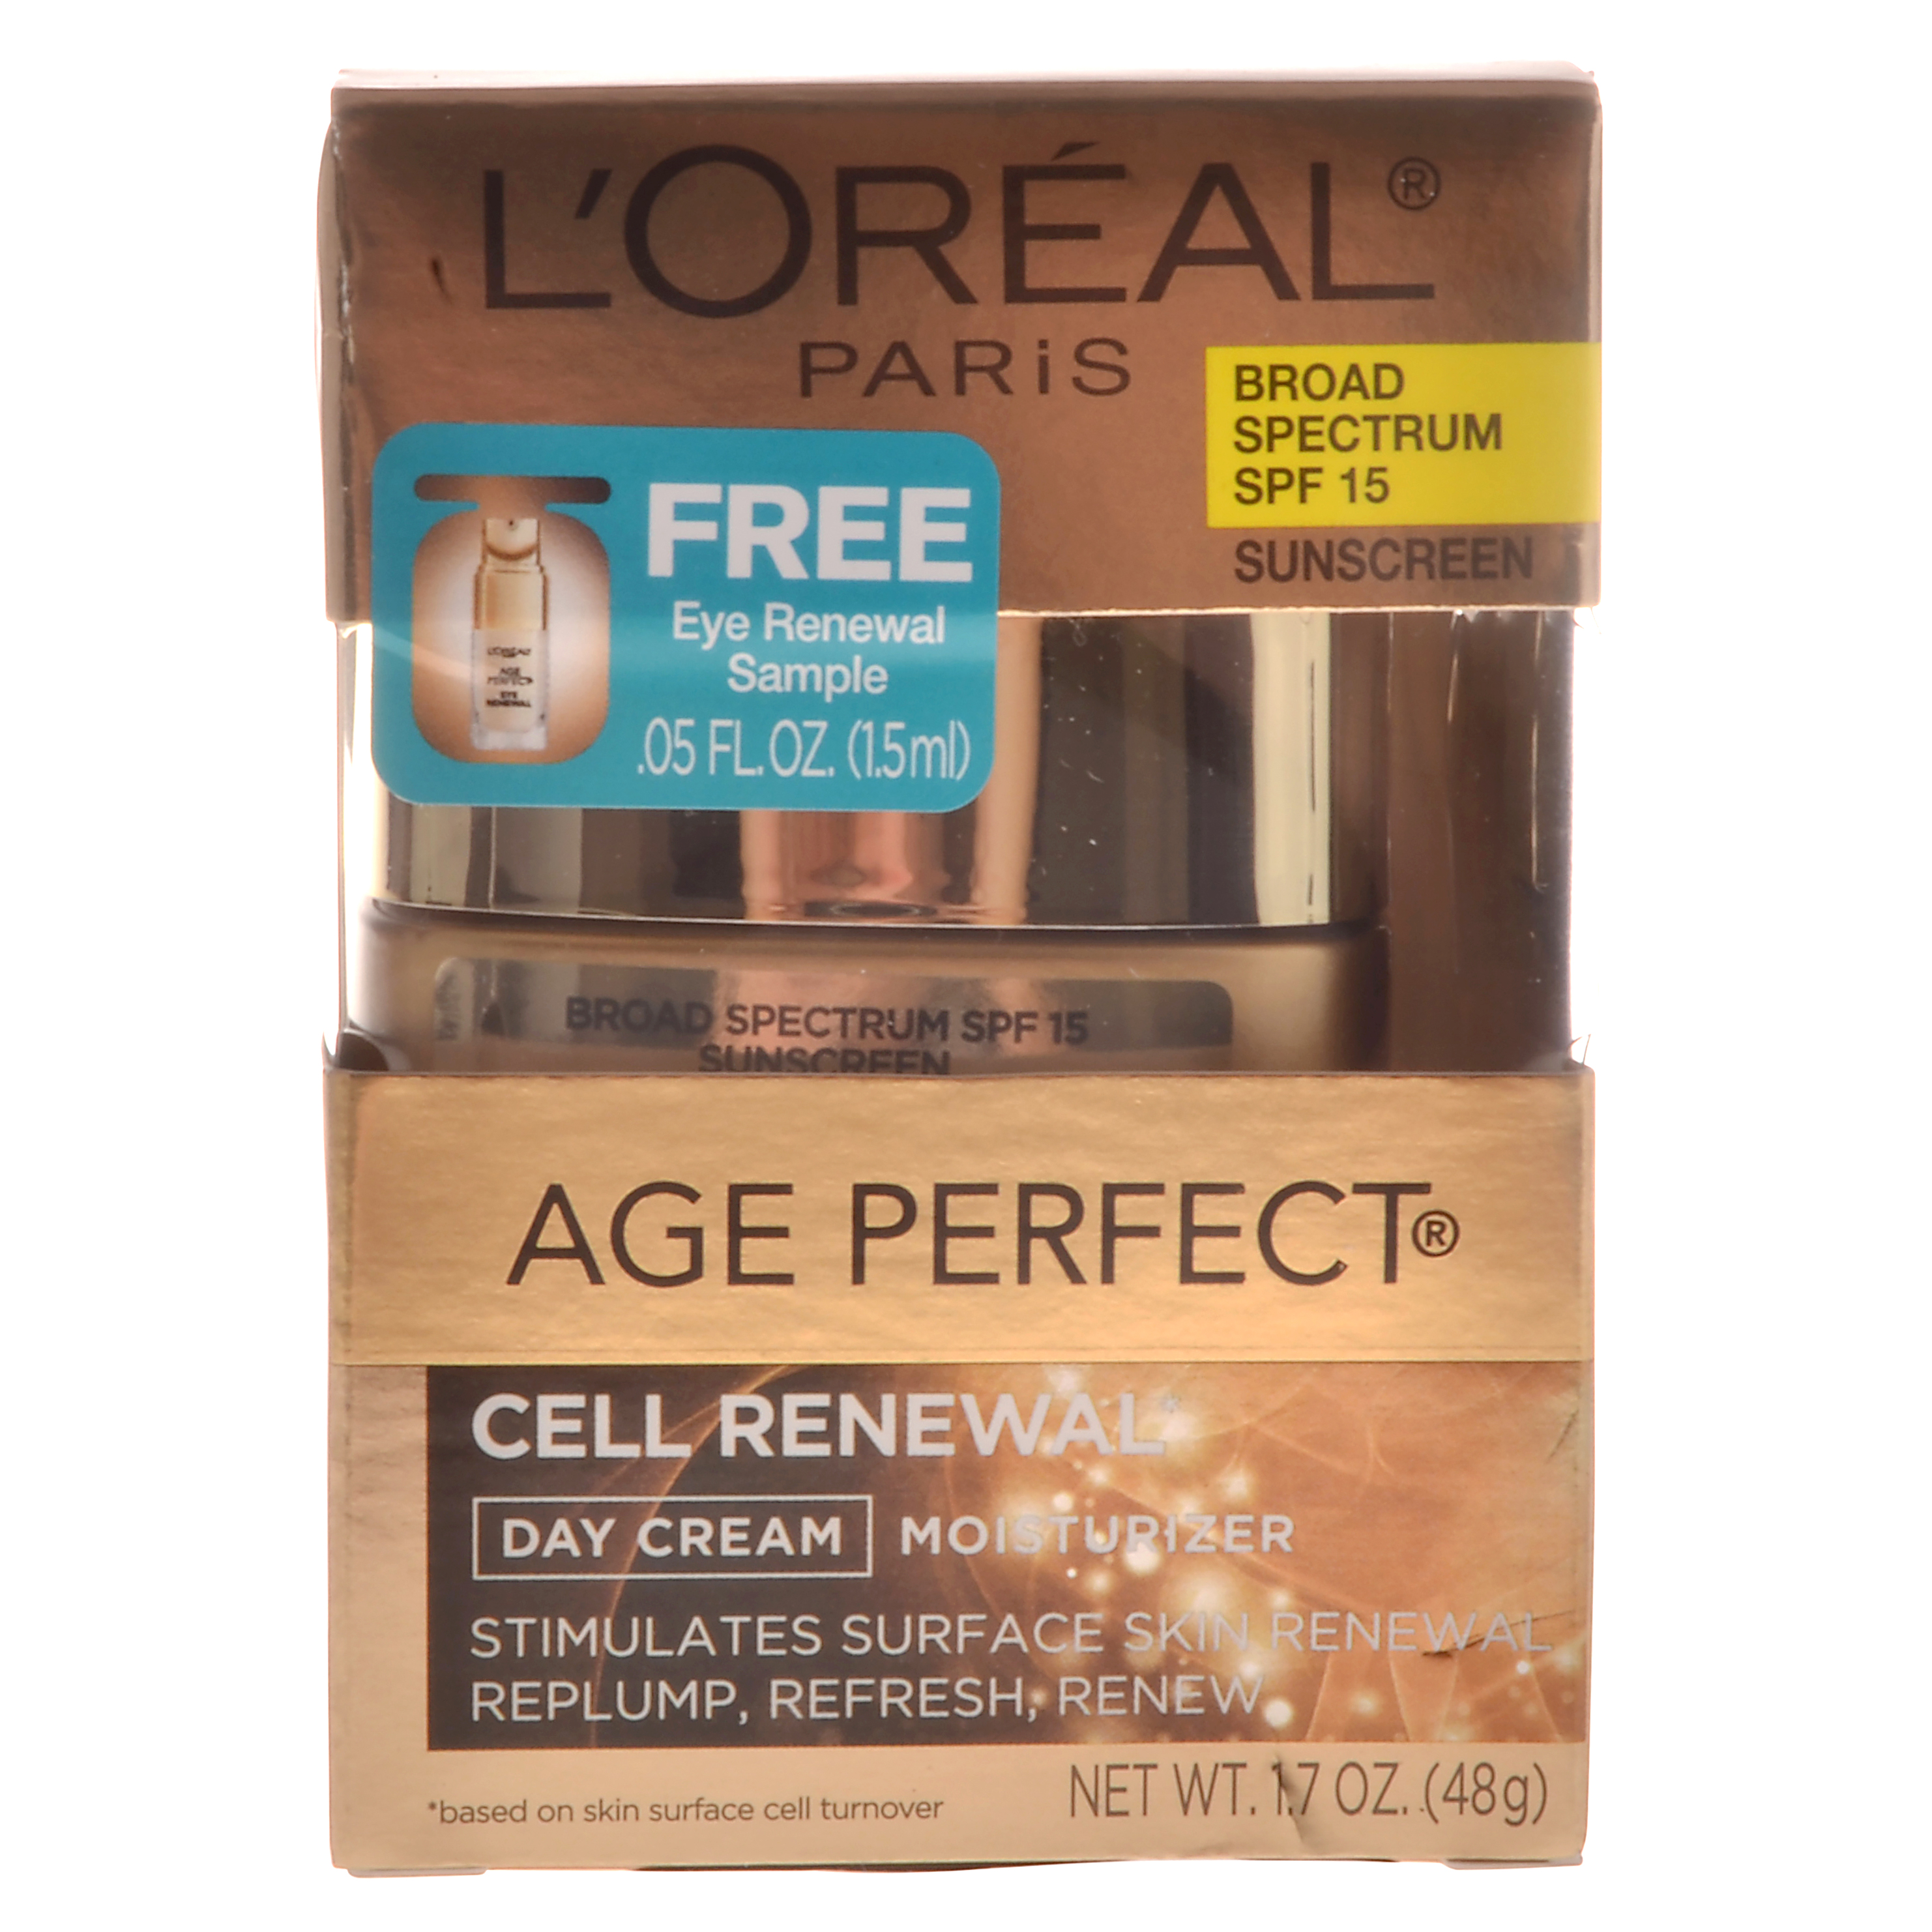 L'Oreal Paris Age Perfect Cell Renewal Day Cream Broad Spectrum SPF 15 Sunscreen, 1.7 oz.